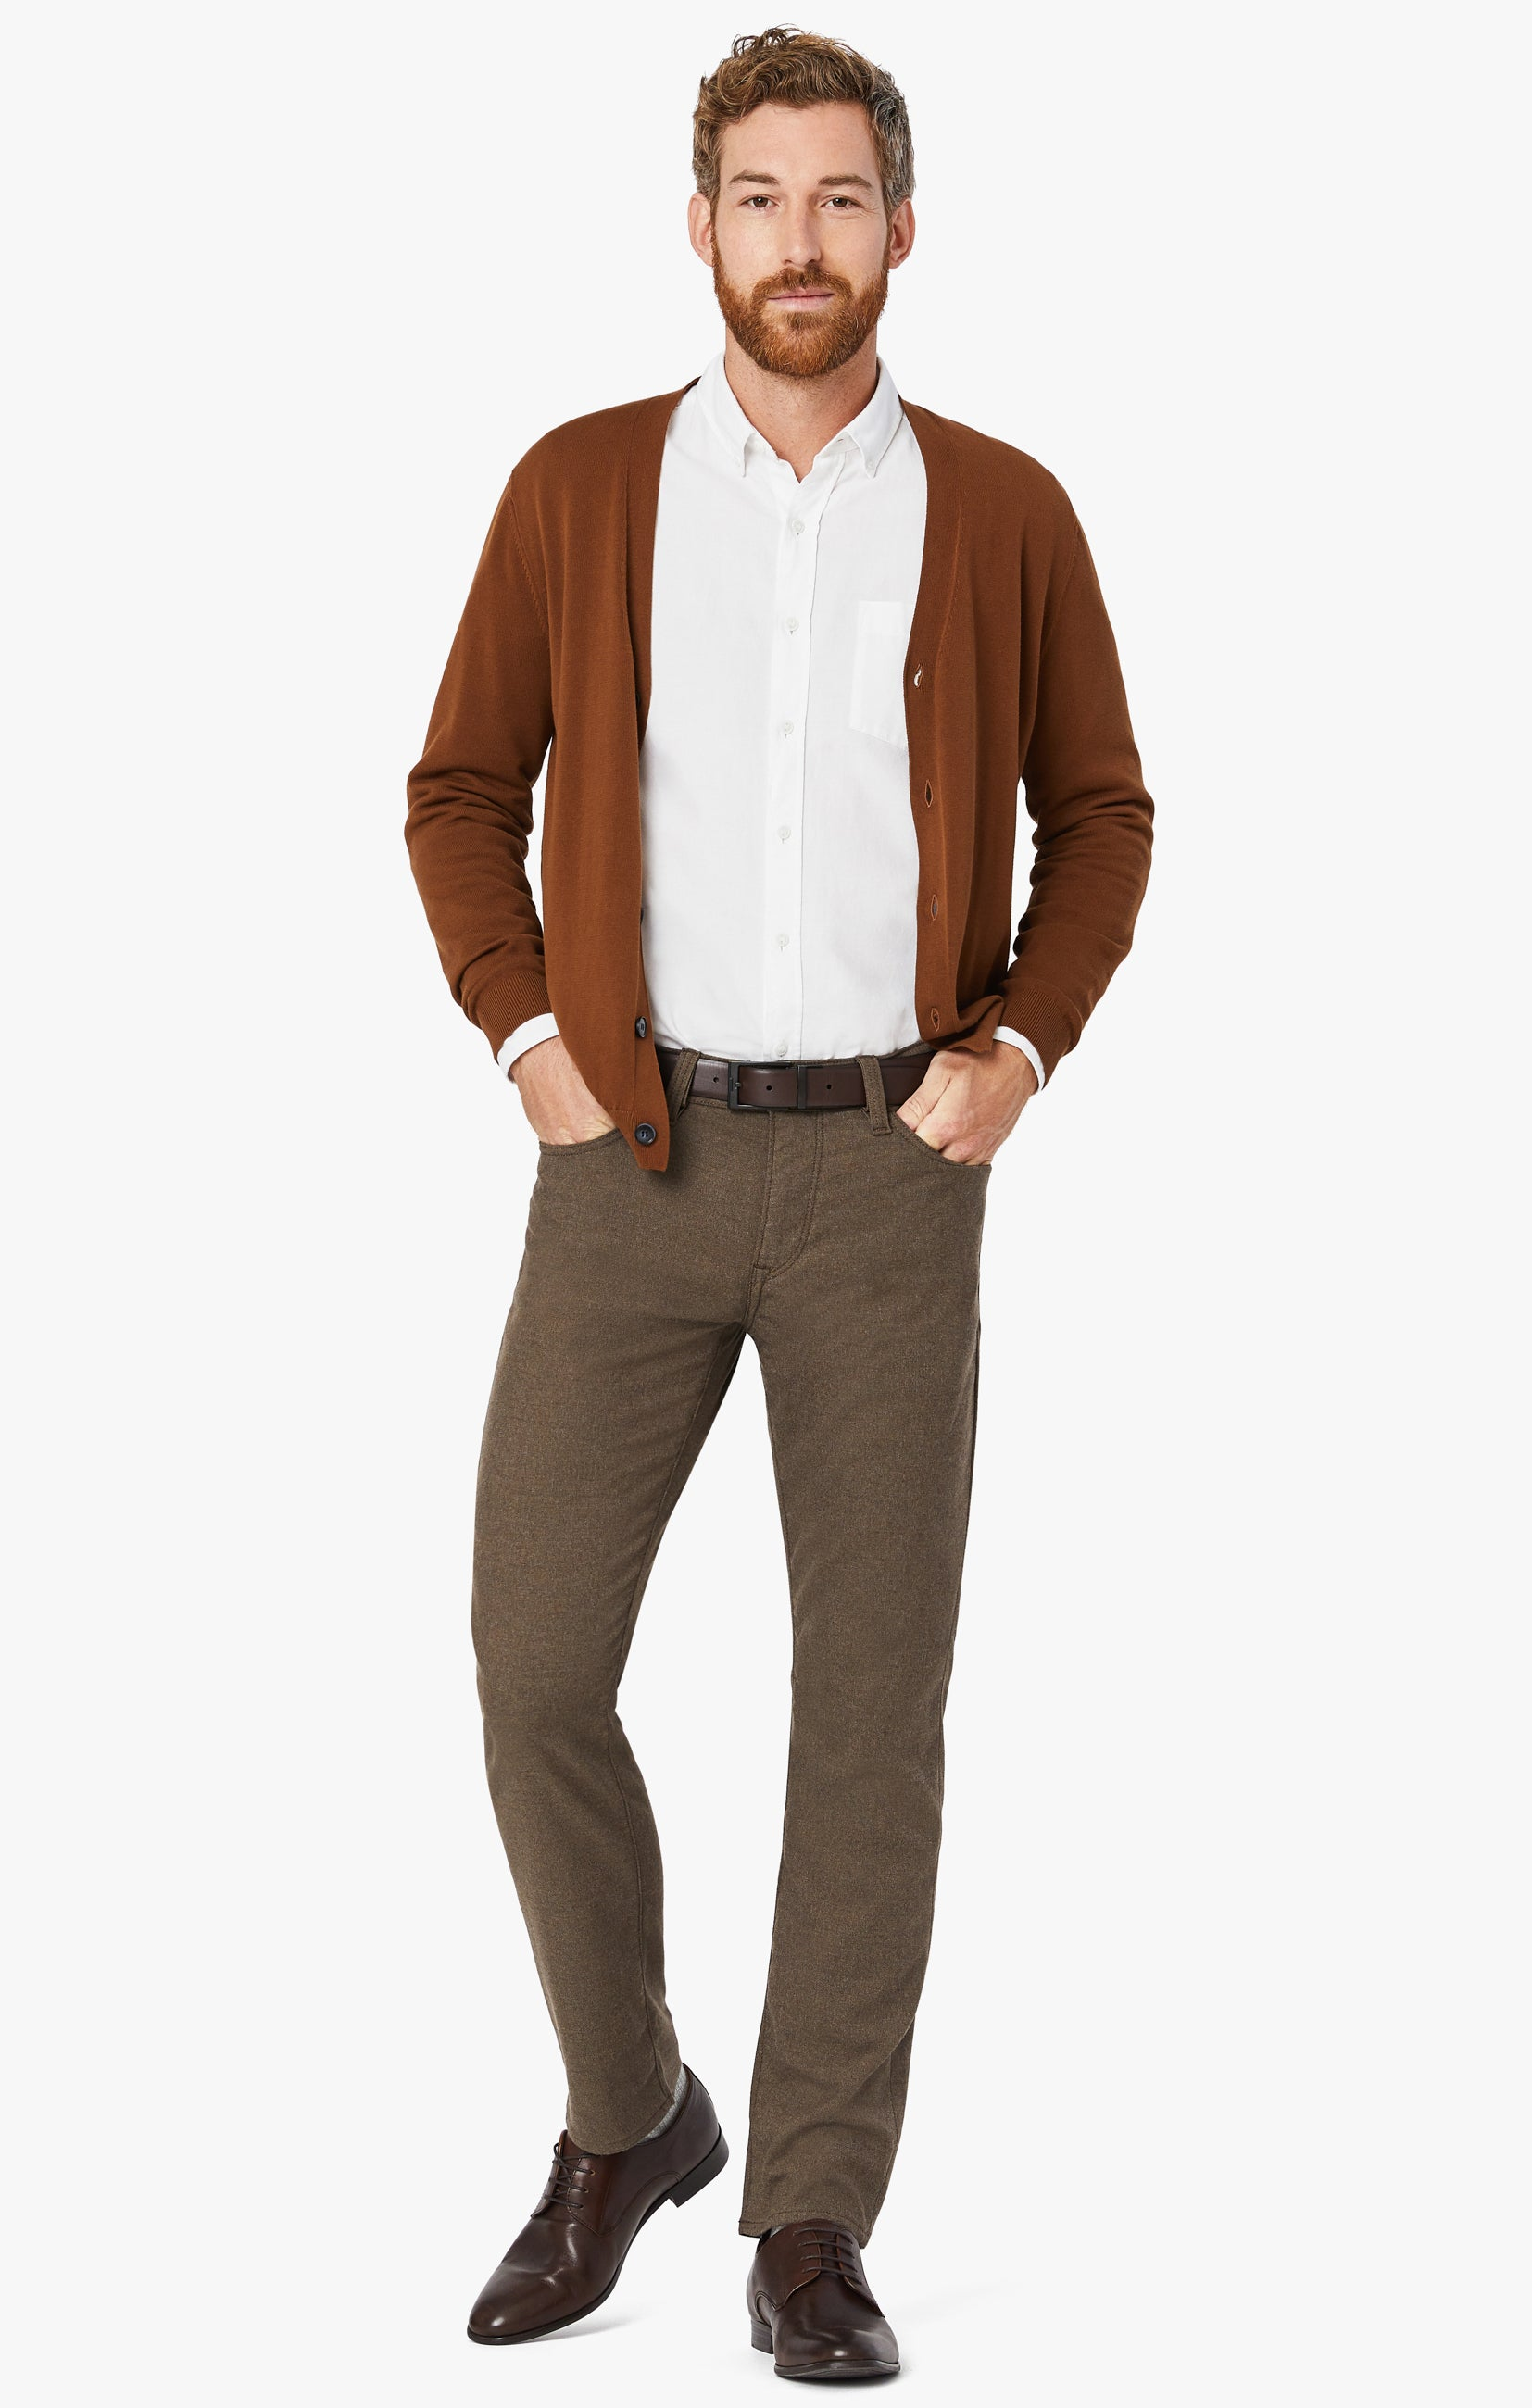 Courage Straight Leg Pants In Mocha Supreme Image 1